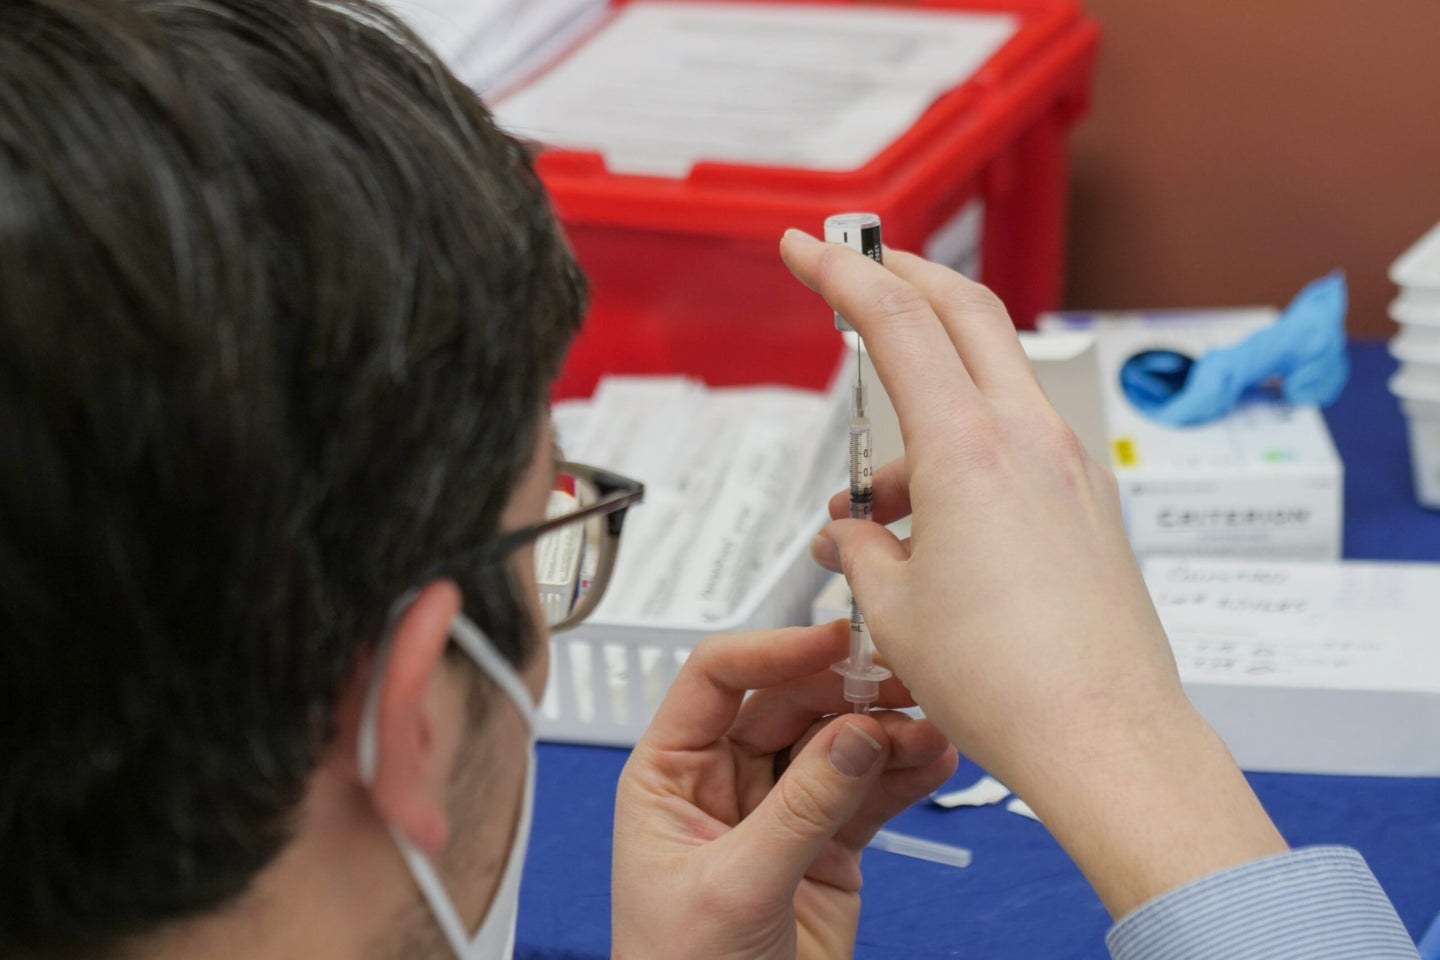 person preparing mRNA vaccine to be injected